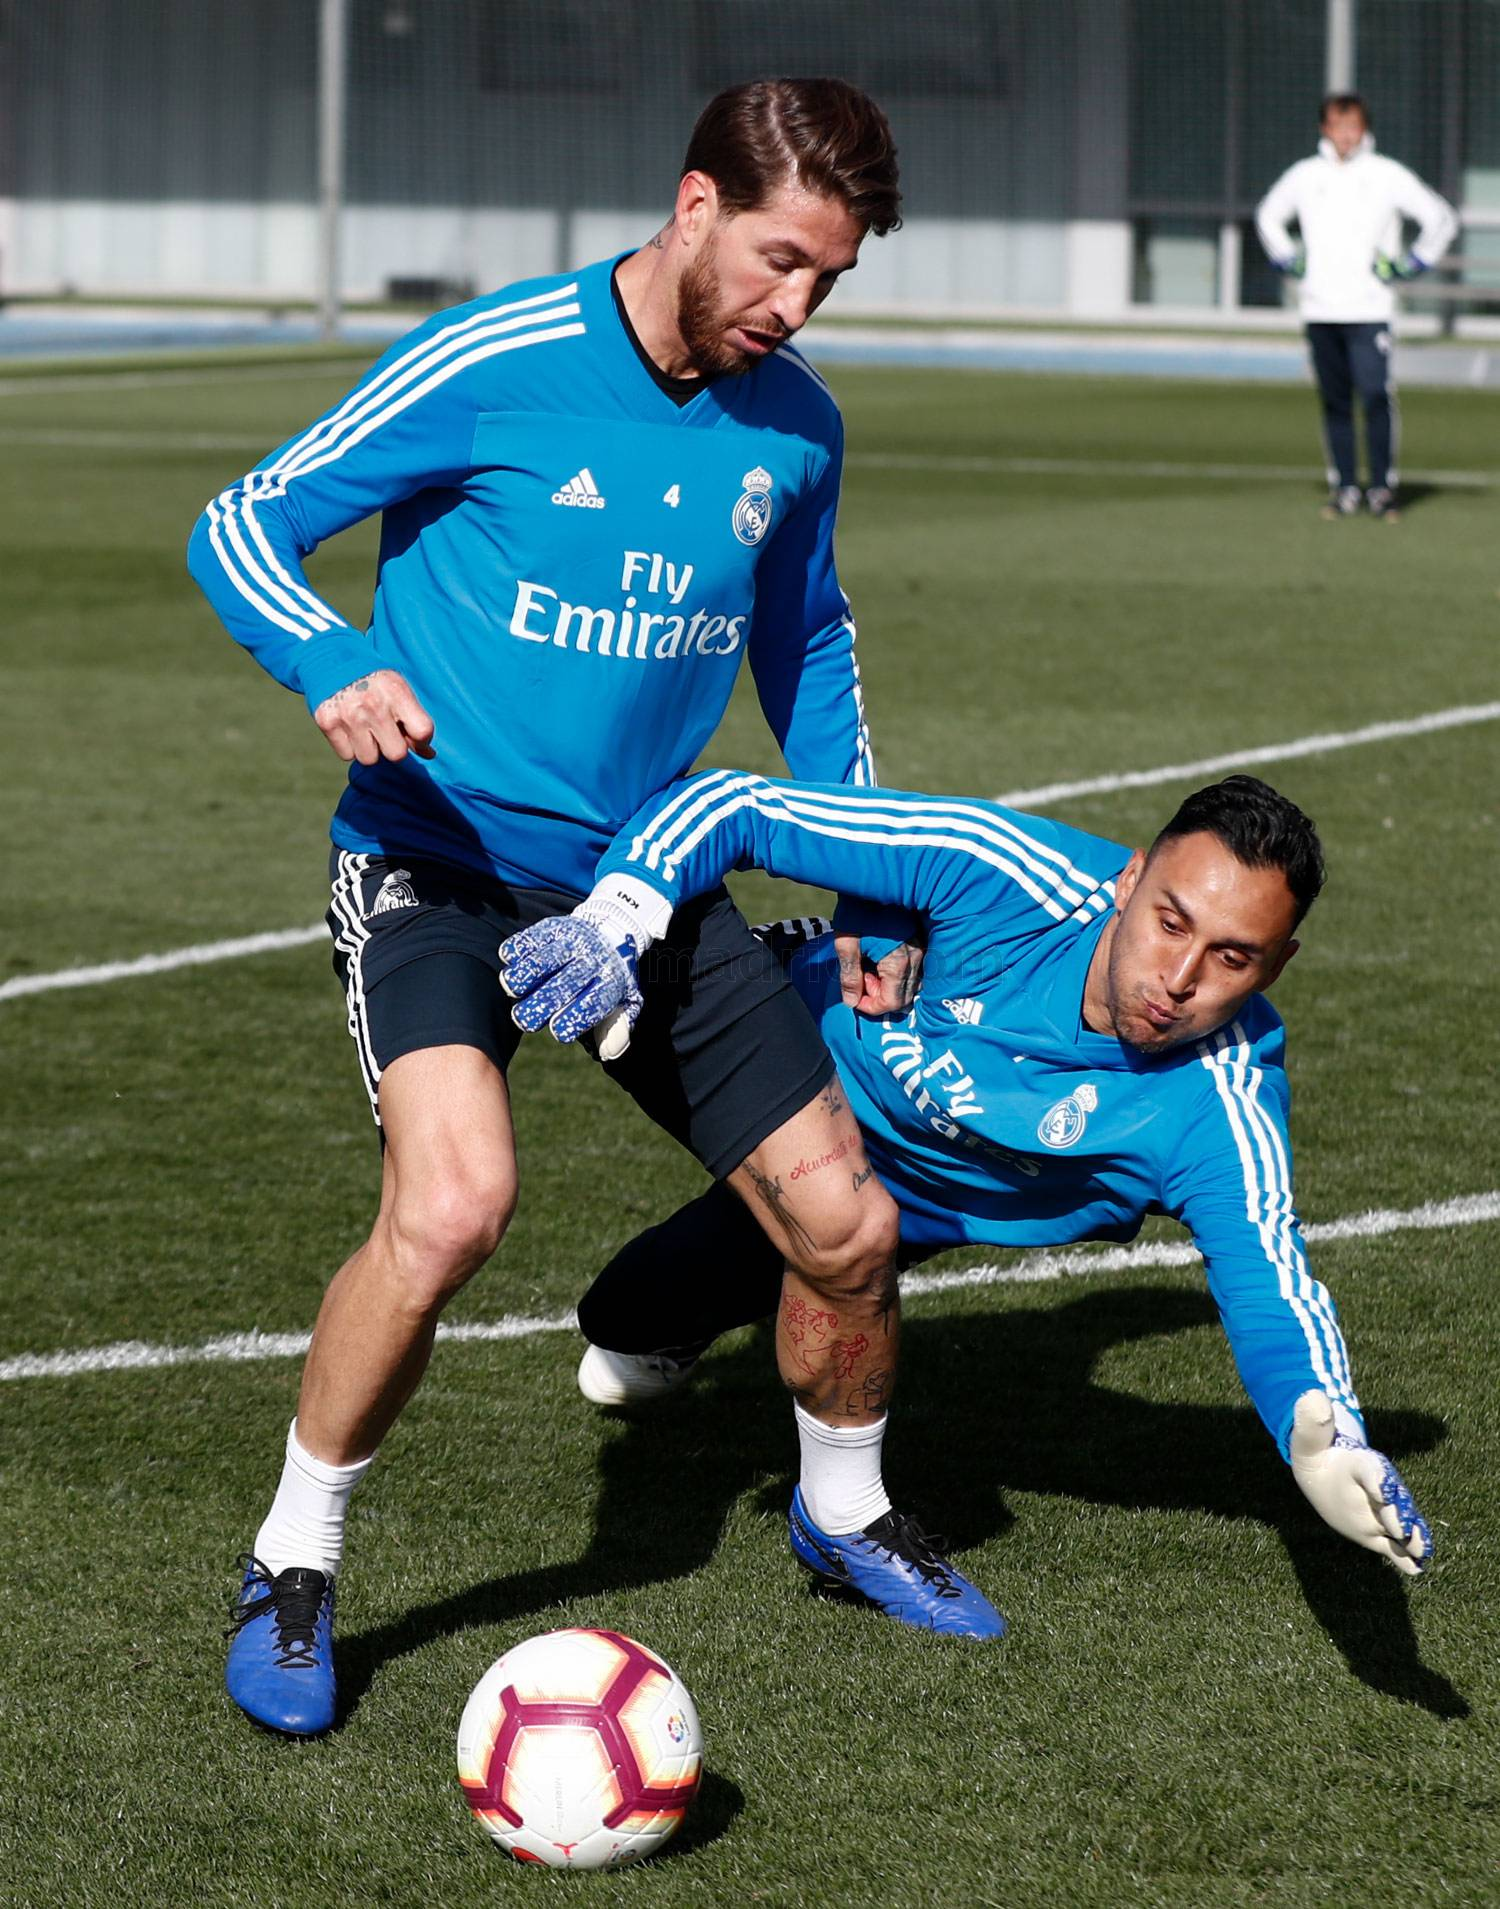 Real Madrid - Entrenamiento del Real Madrid - 10-04-2019